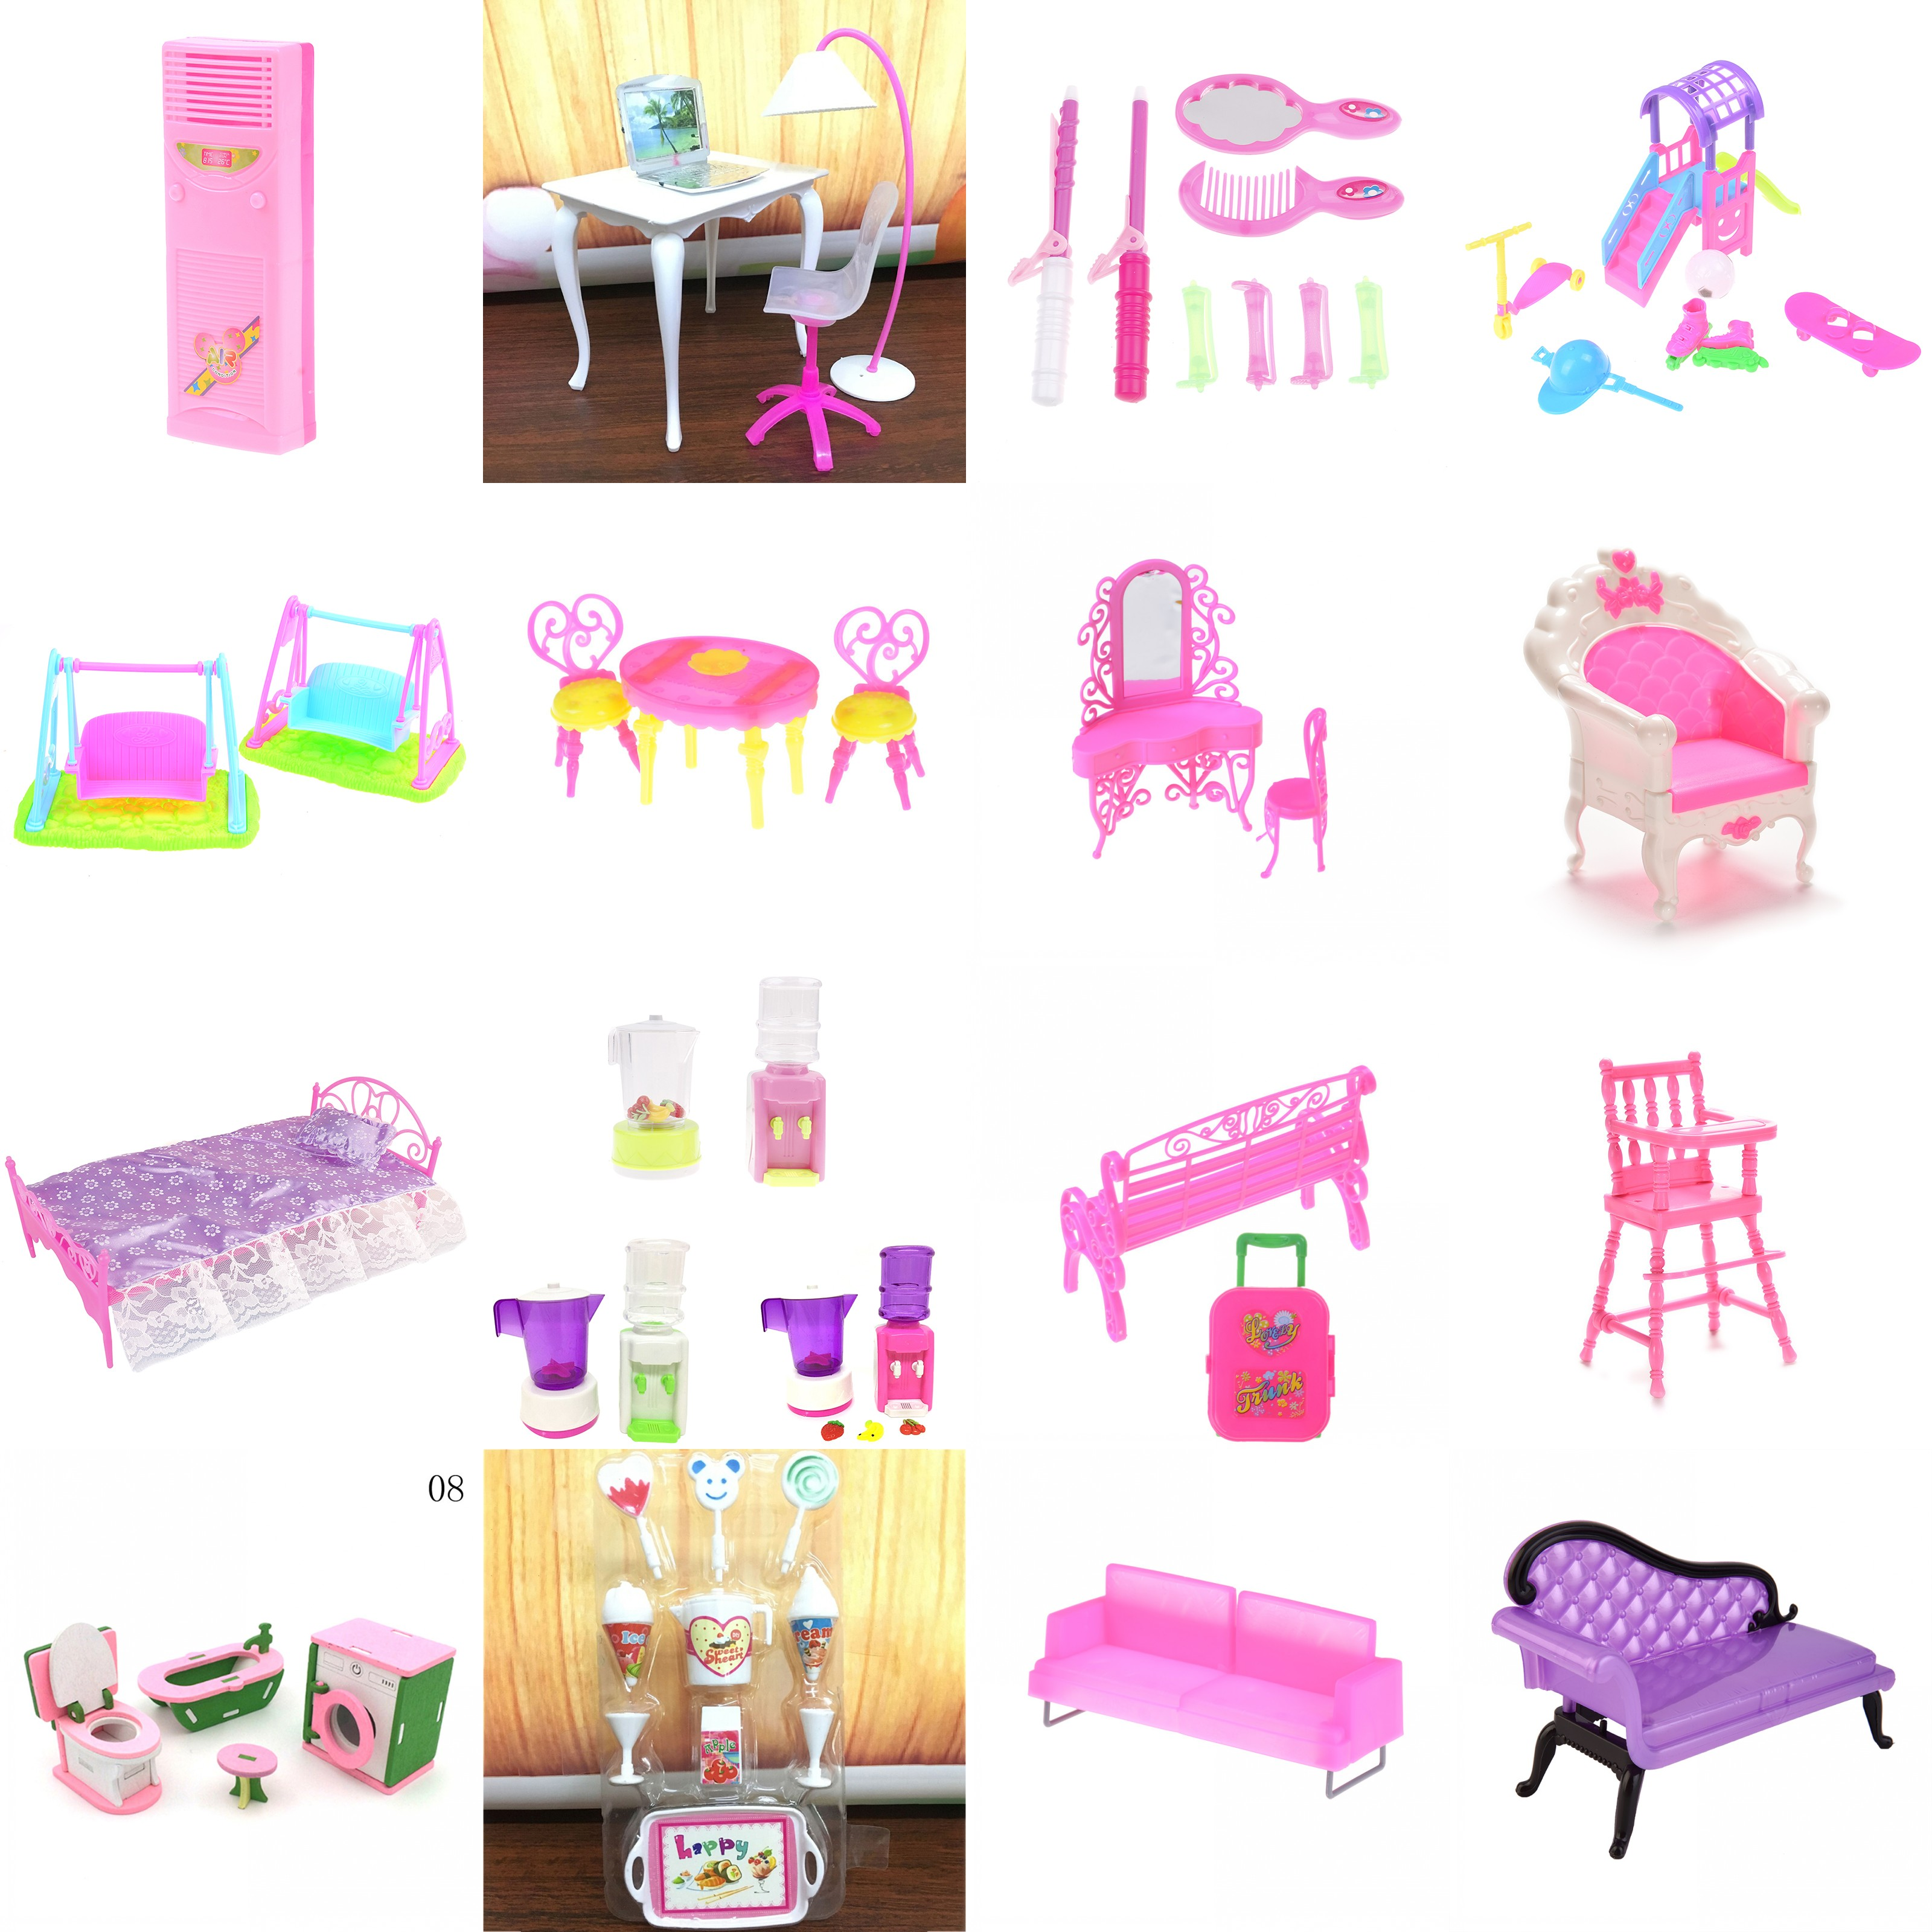 Kid Plastic Pretend Play Table Chair Furniture Toy Doll Accessories Furniture Dolls House Miniature Bath Bed Living Room Toy